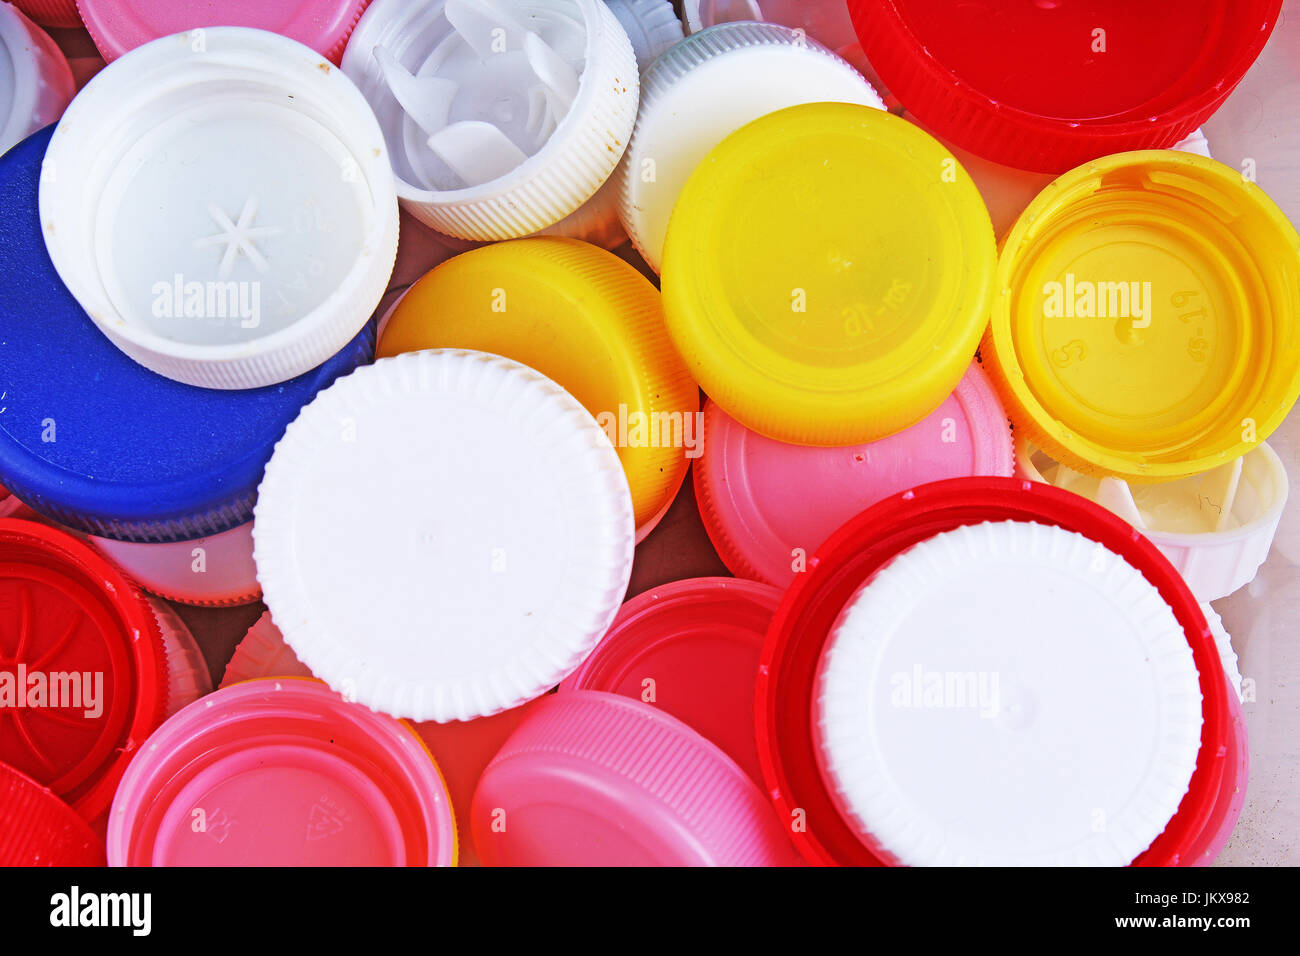 Collect plastic bottle caps.  Close-up shot of stack of recyclable plastic bottle caps on white background. Bottle - Stock Image